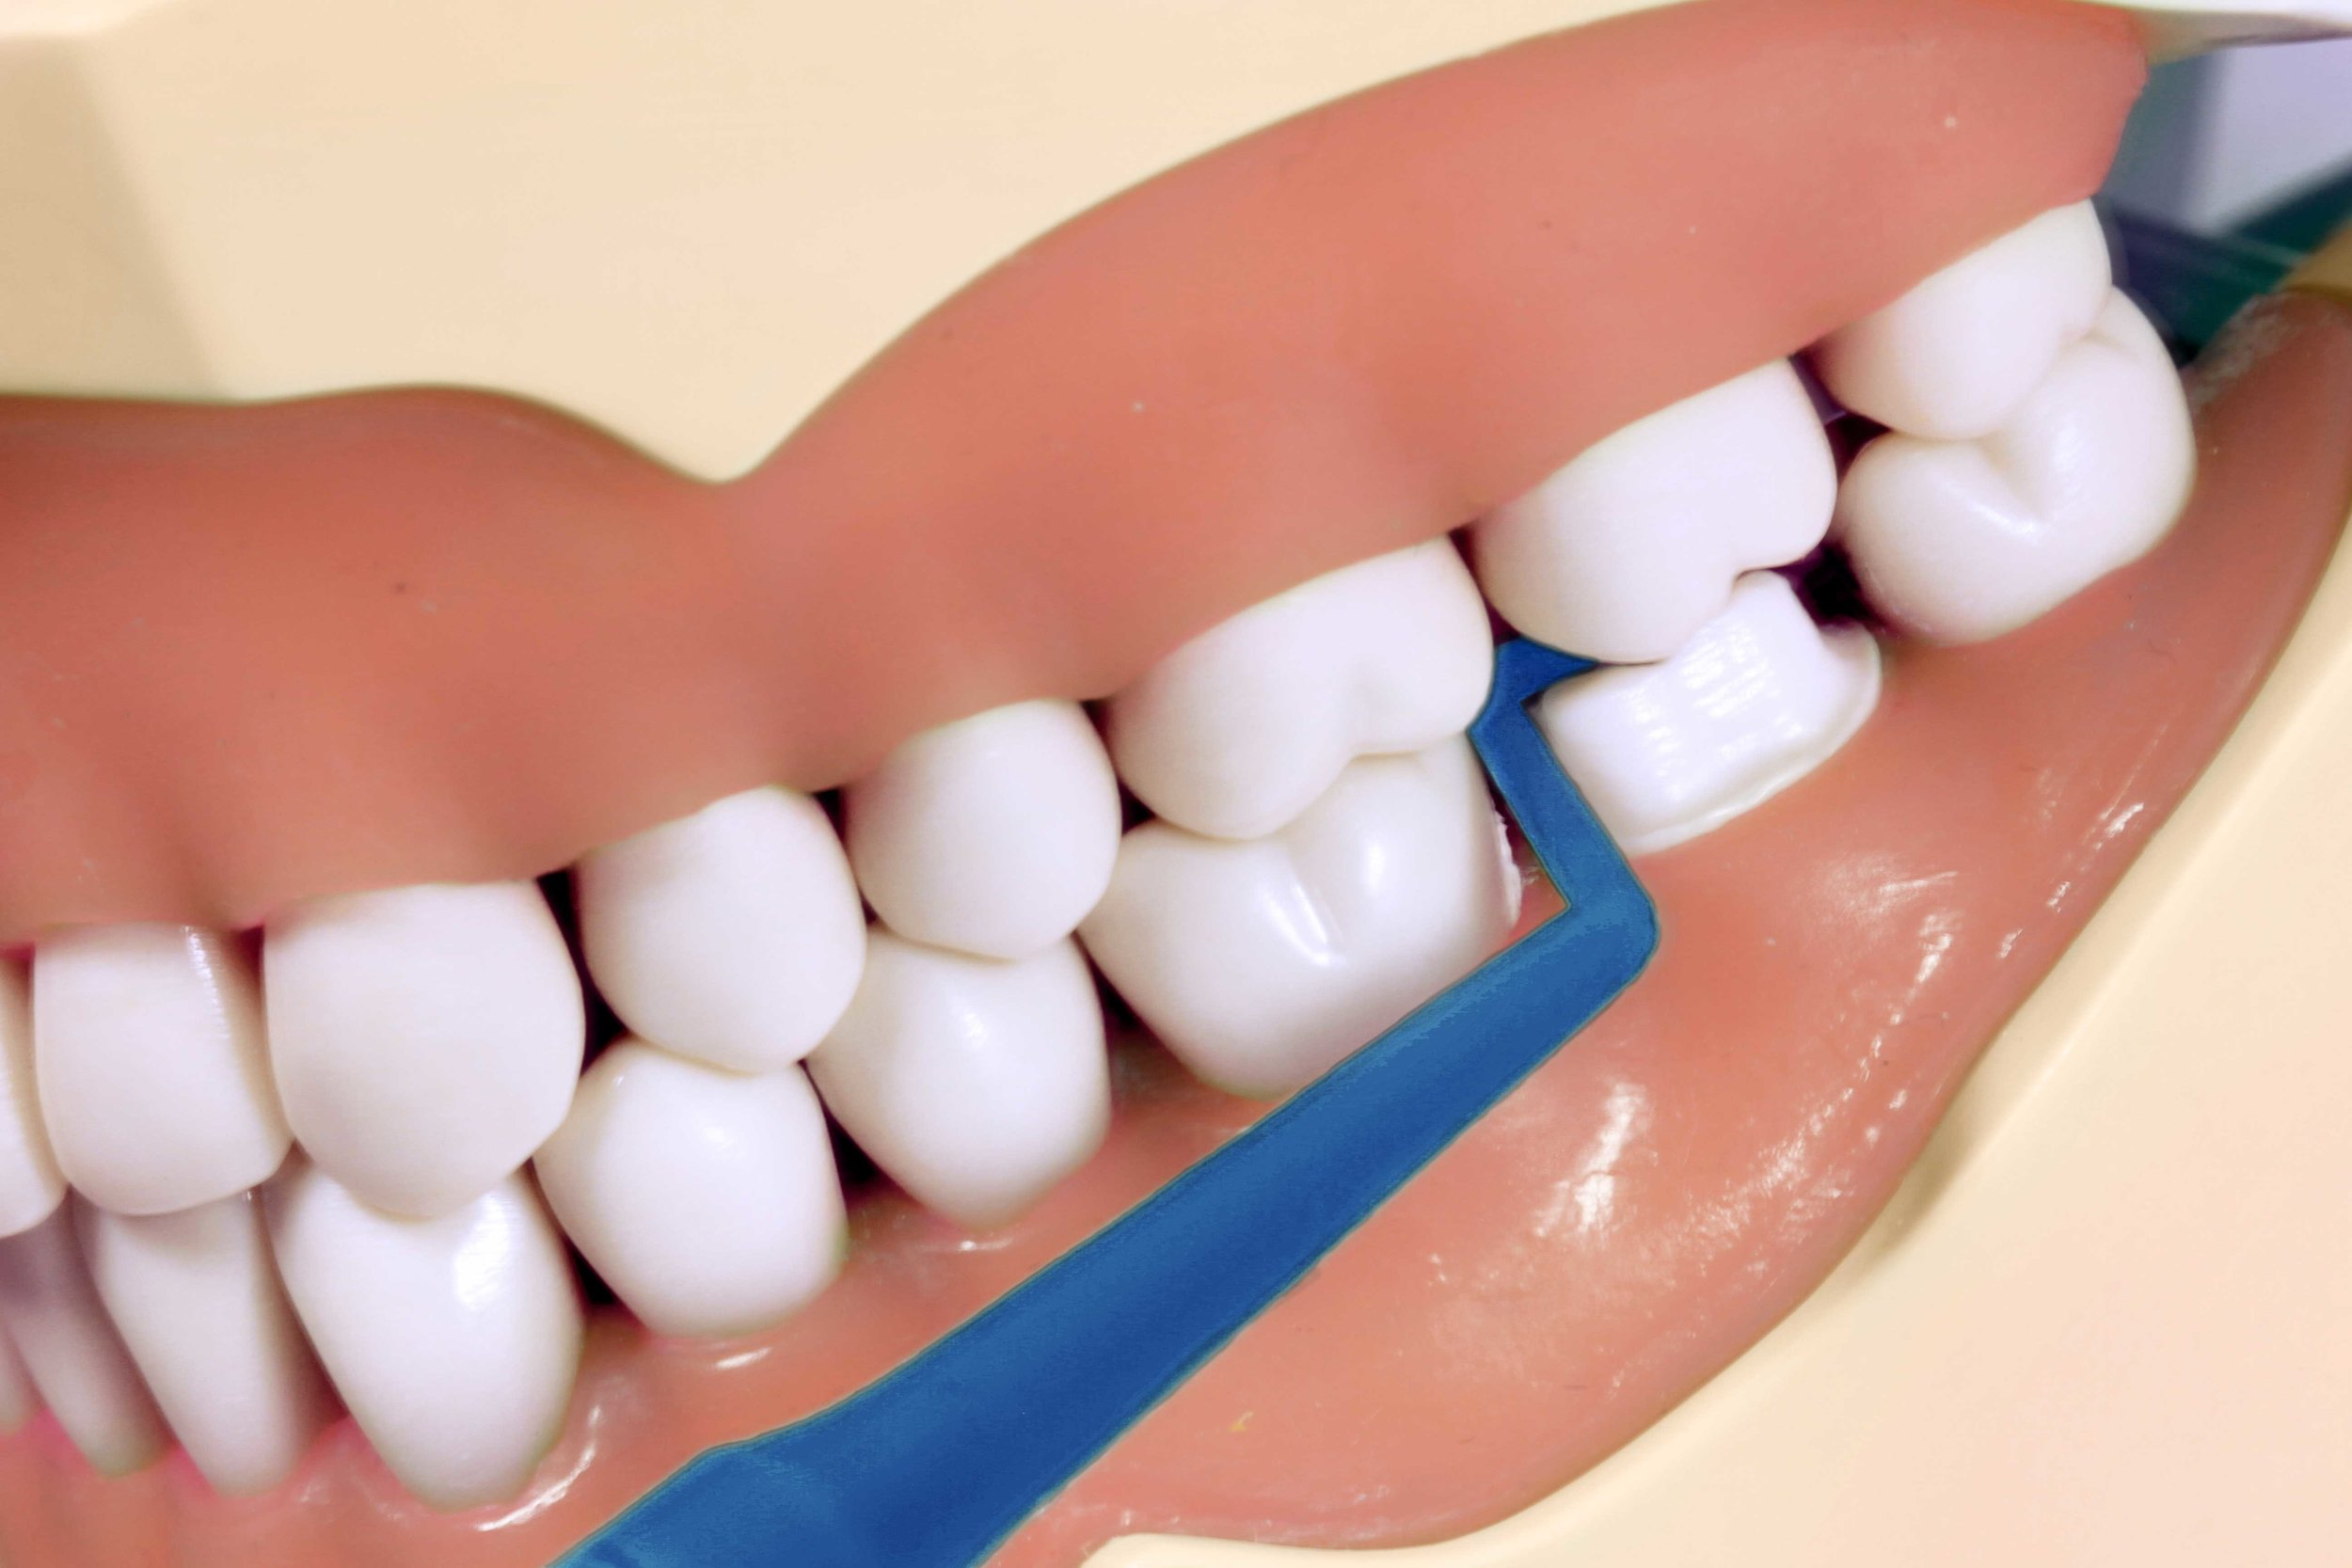 M Tip confirms mesial-half clearance